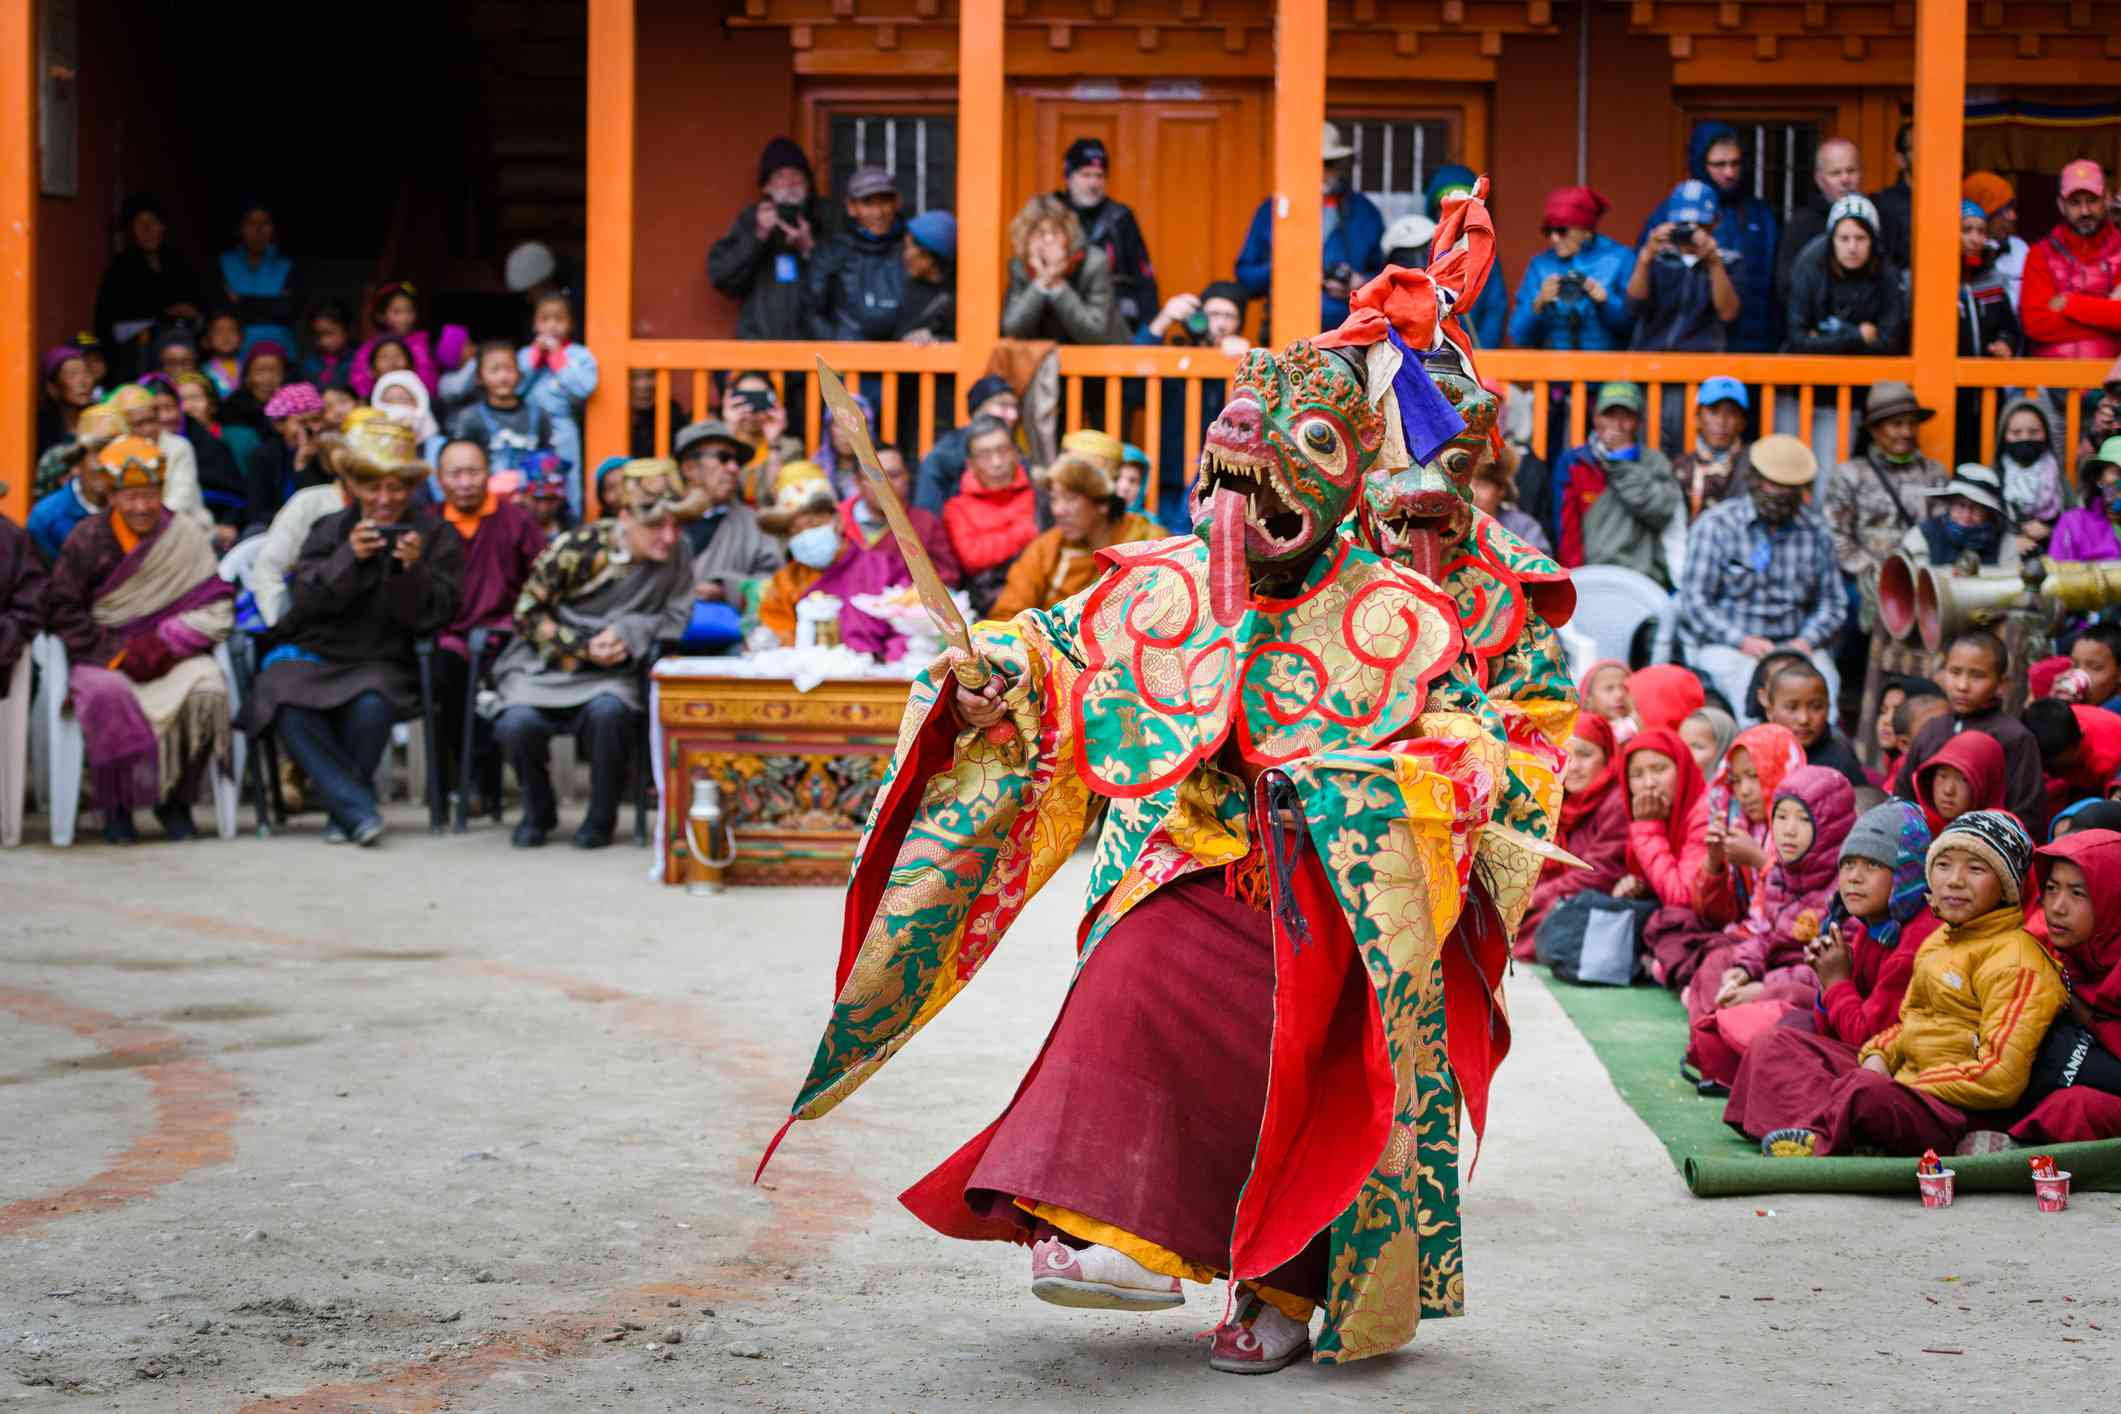 masked dancer wearing animal mask and colorful roes dancing in a courtyard surrounded by people watching